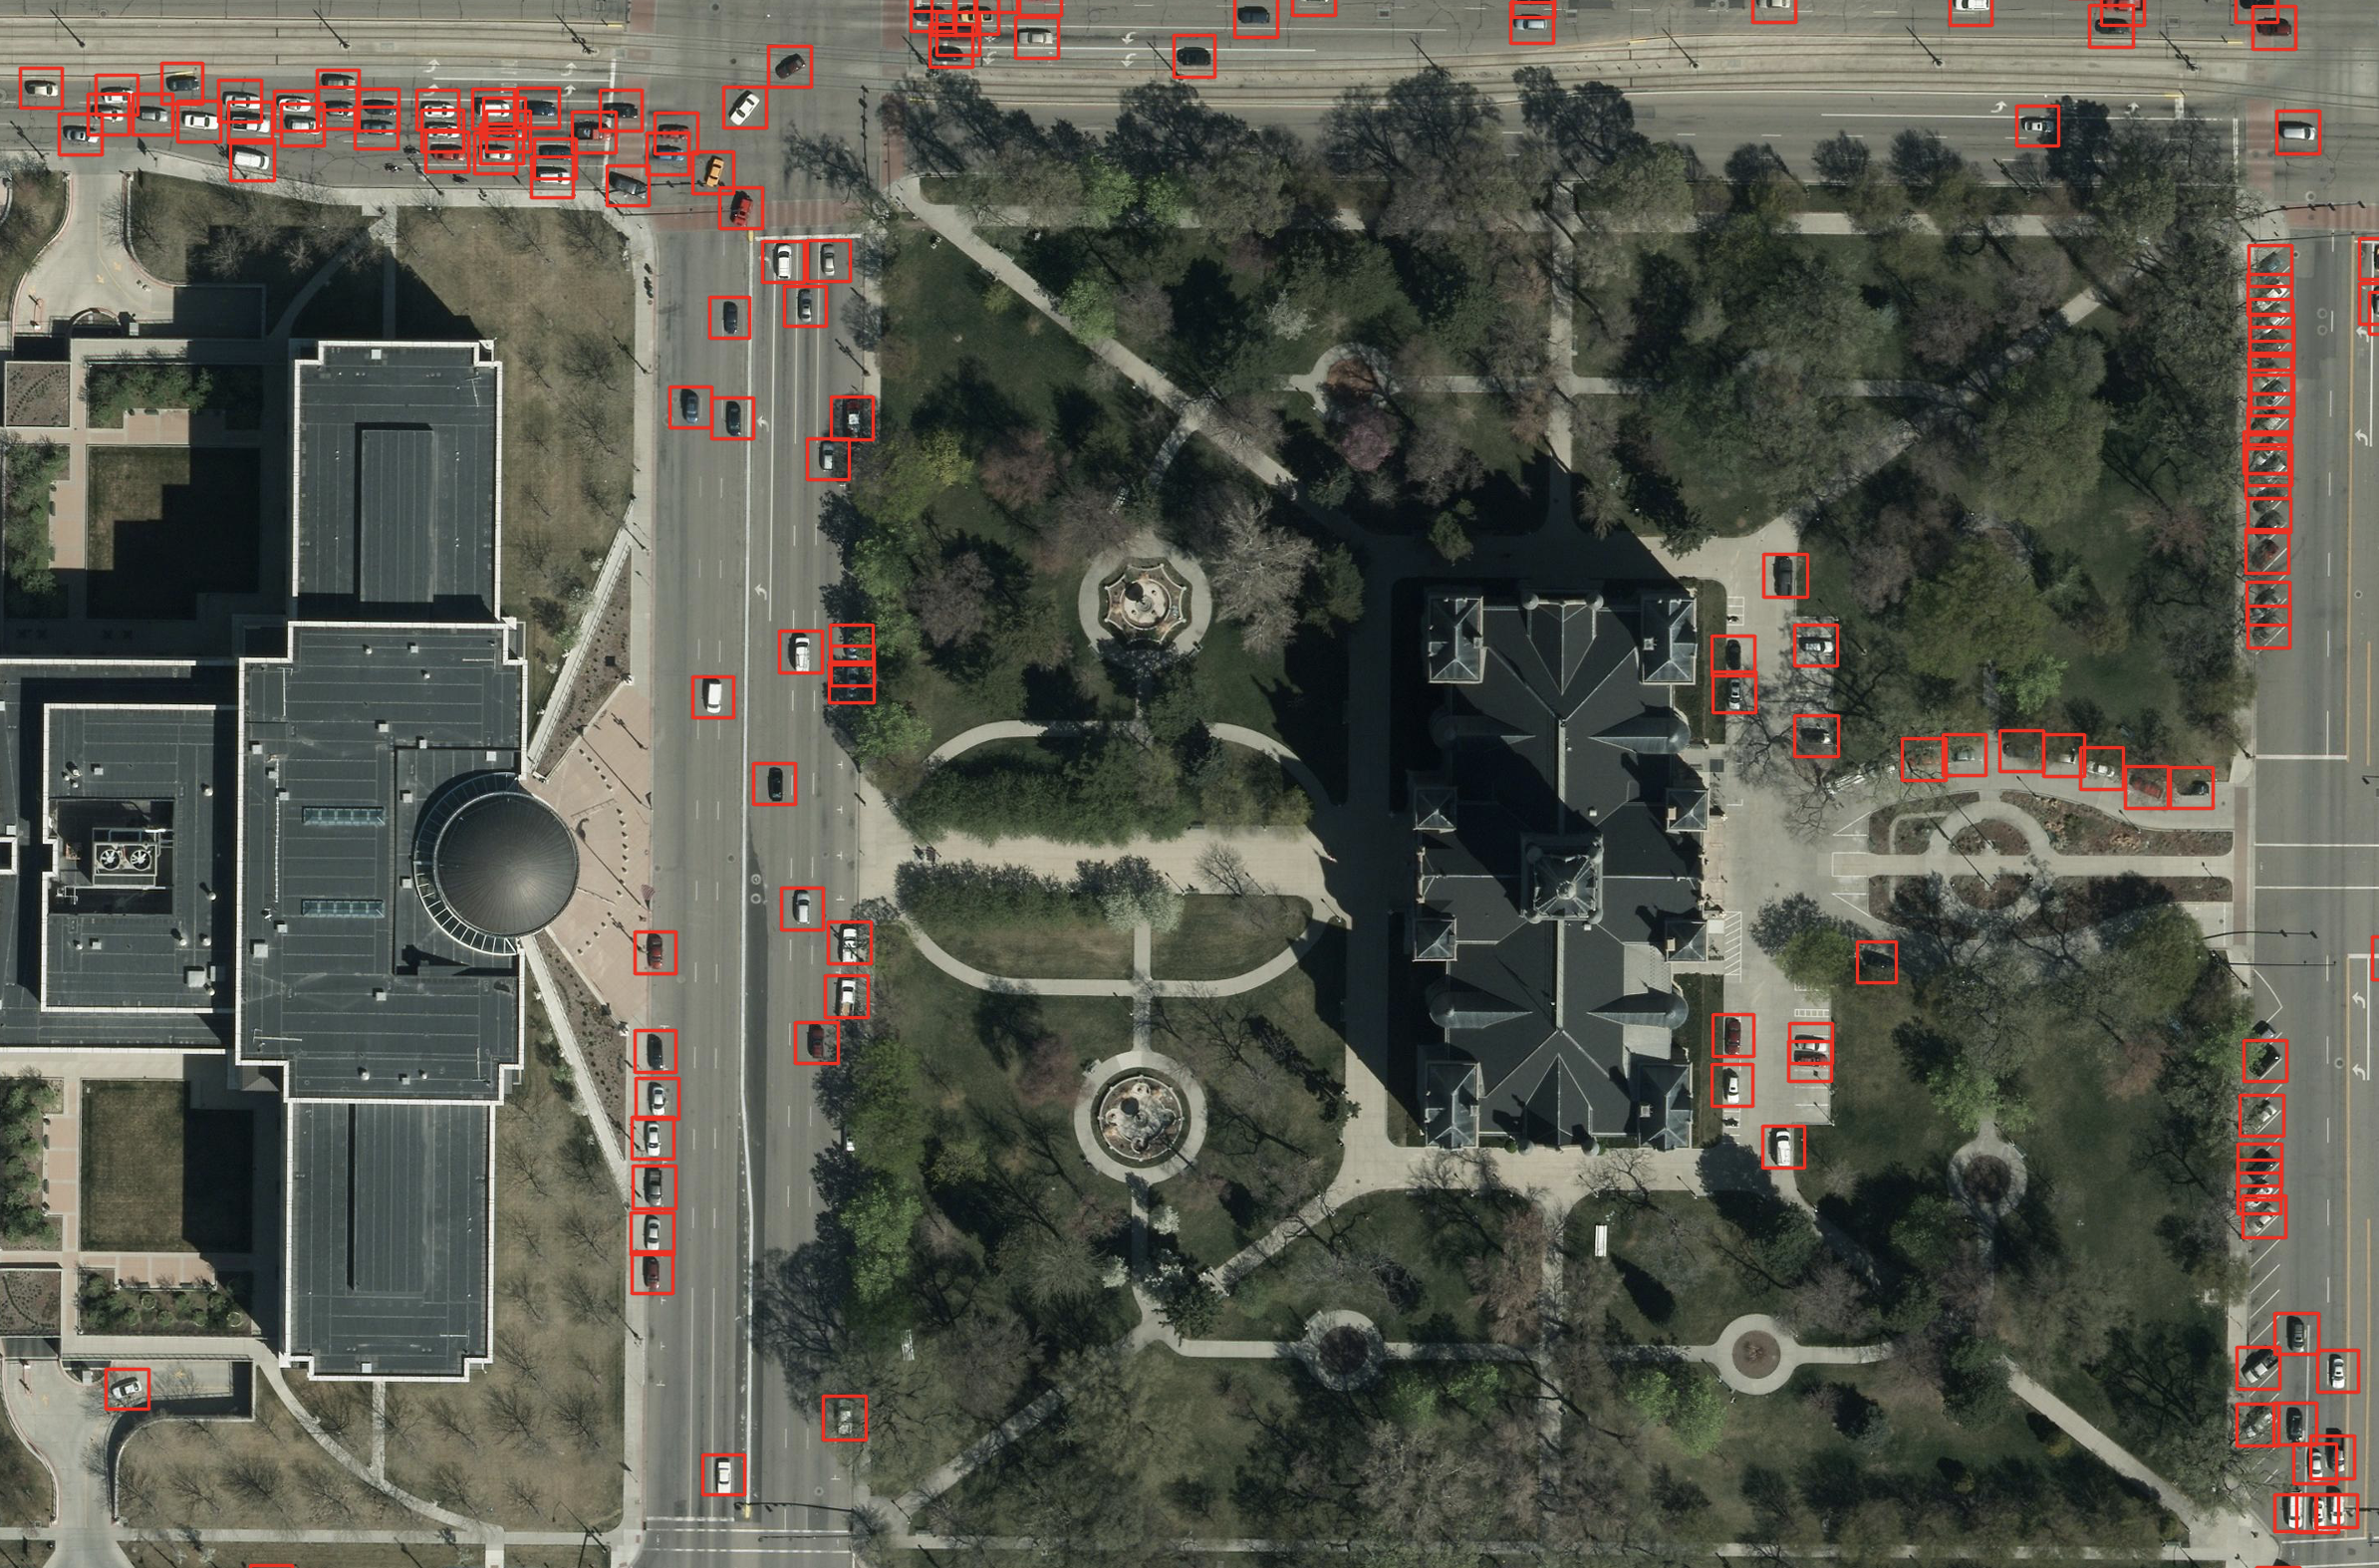 Object Detection with Deep Learning on Aerial Imagery